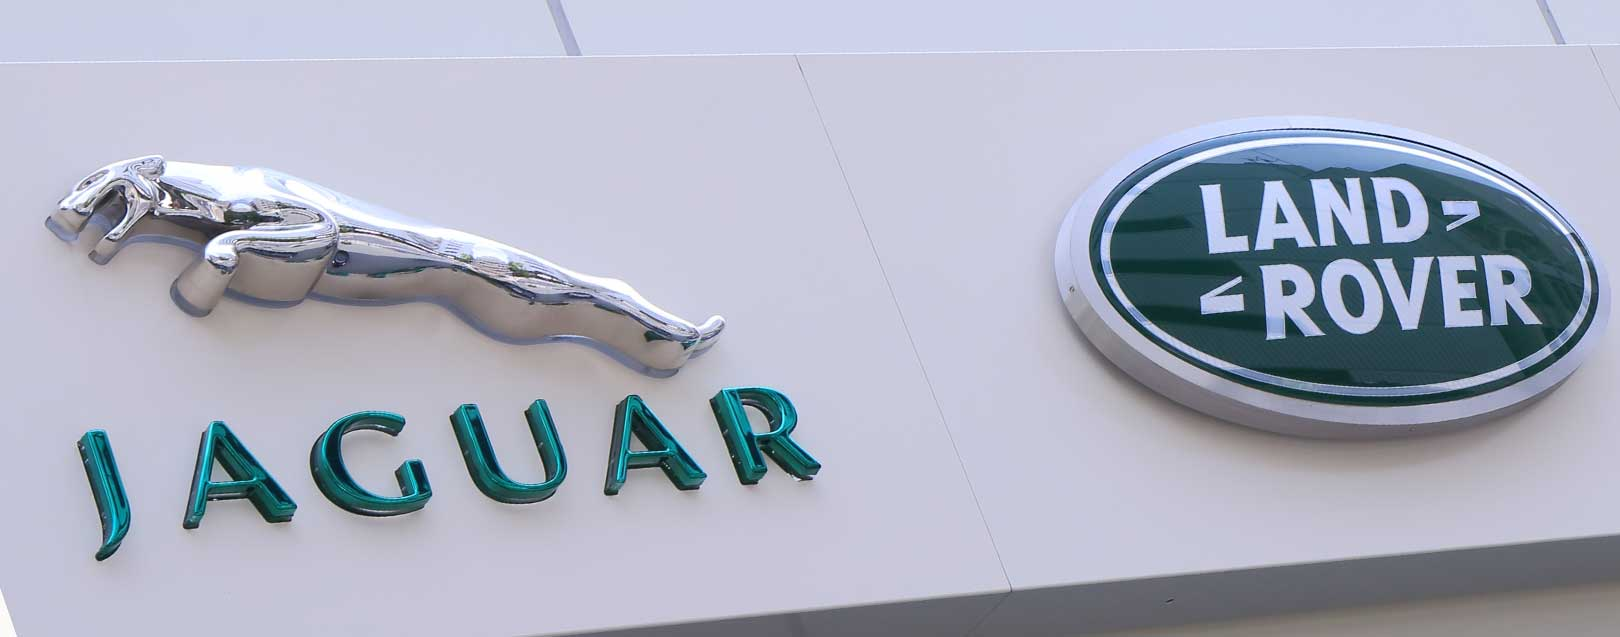 Tata-owned Jaguar Land Rover to hire 5000 people in Britain